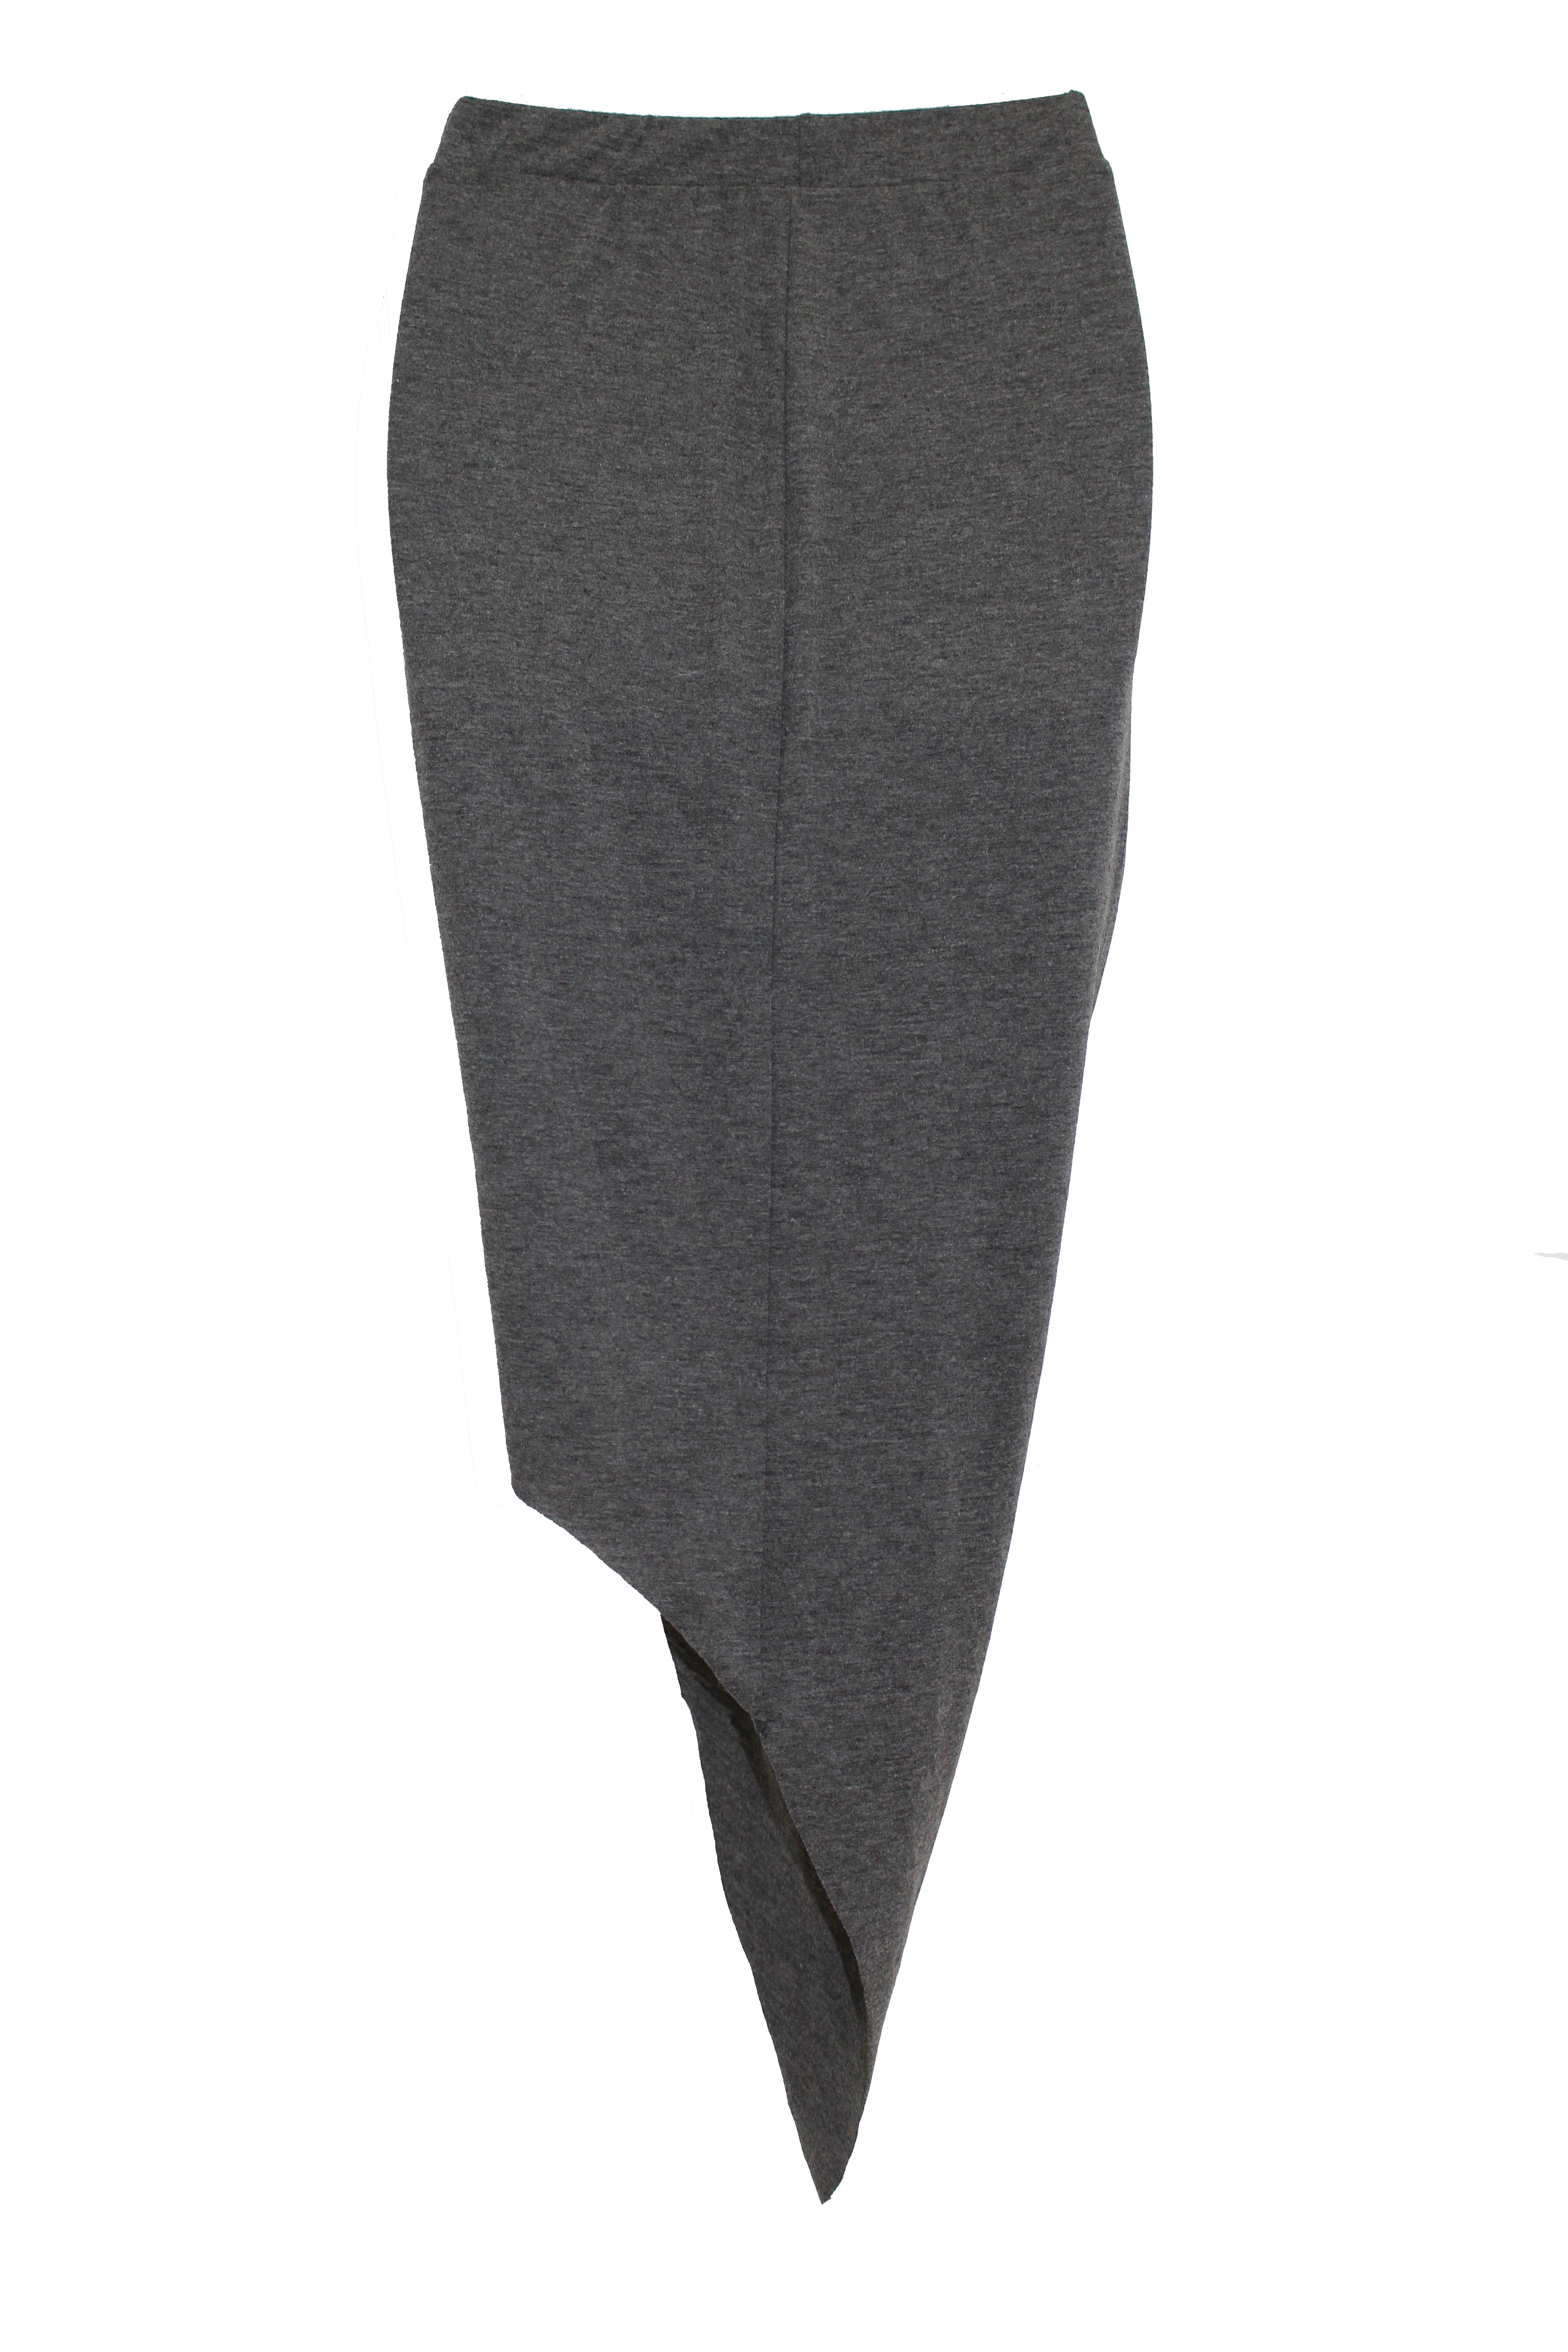 Hommage - Twisted Hi Low Charcoal Skirt - Cimiche